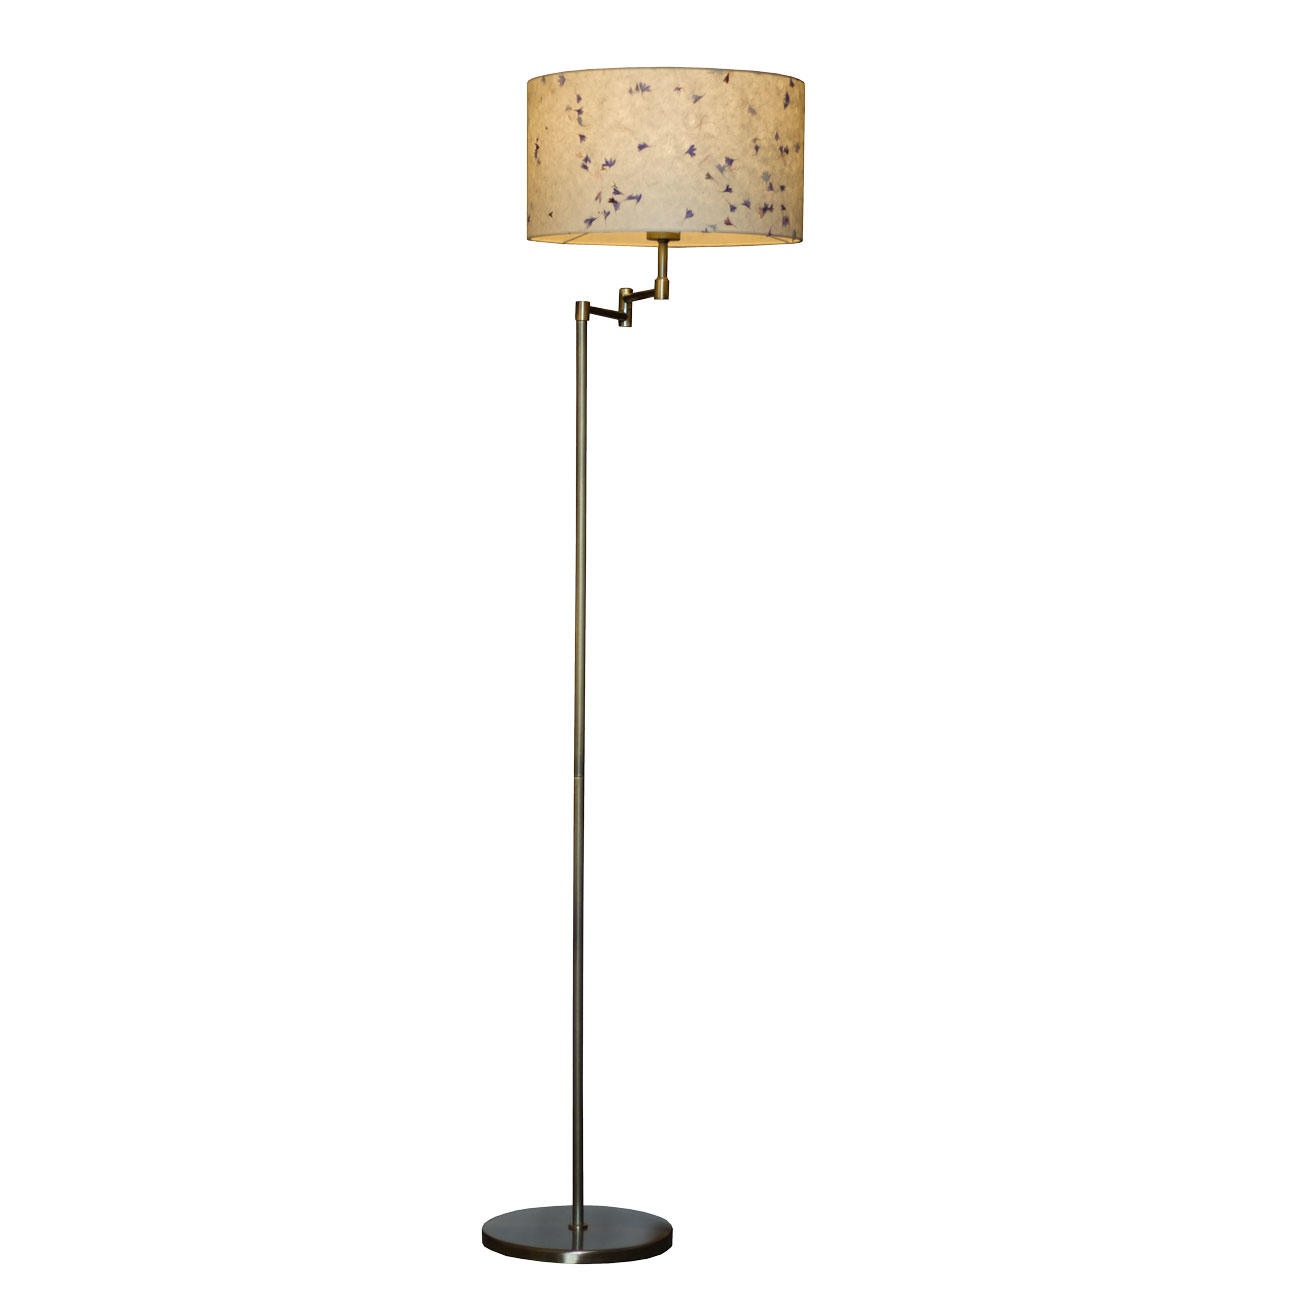 35cm x 20cm Drum Lamp Shade on Double Swing Arm Floor Lamp